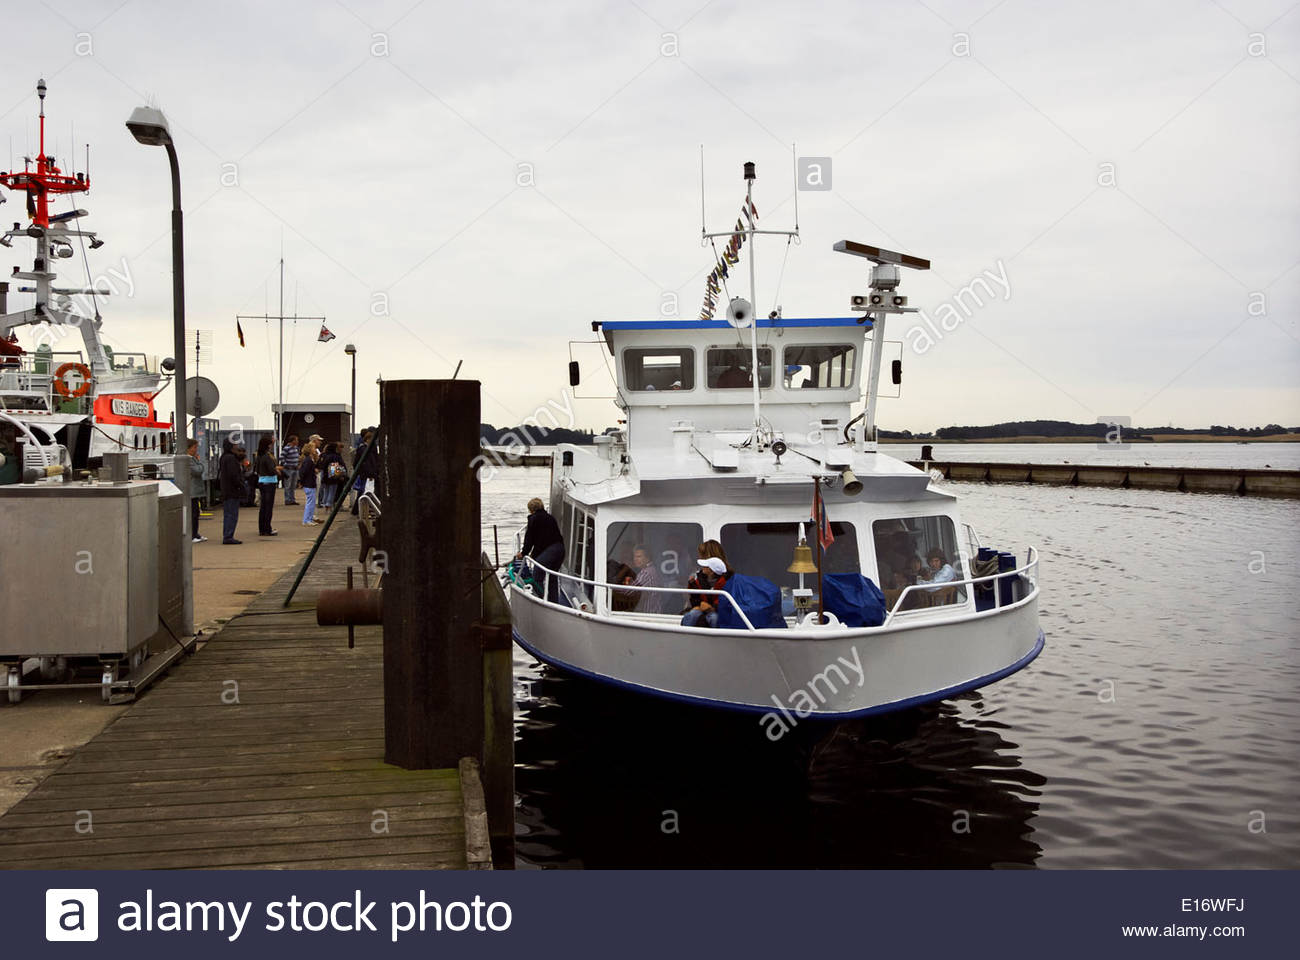 The MS Stadt Kappeln prepares to leave Maasholm's harbor for an excursion of the Schlei, with Schleswig the final destination. - Stock Image